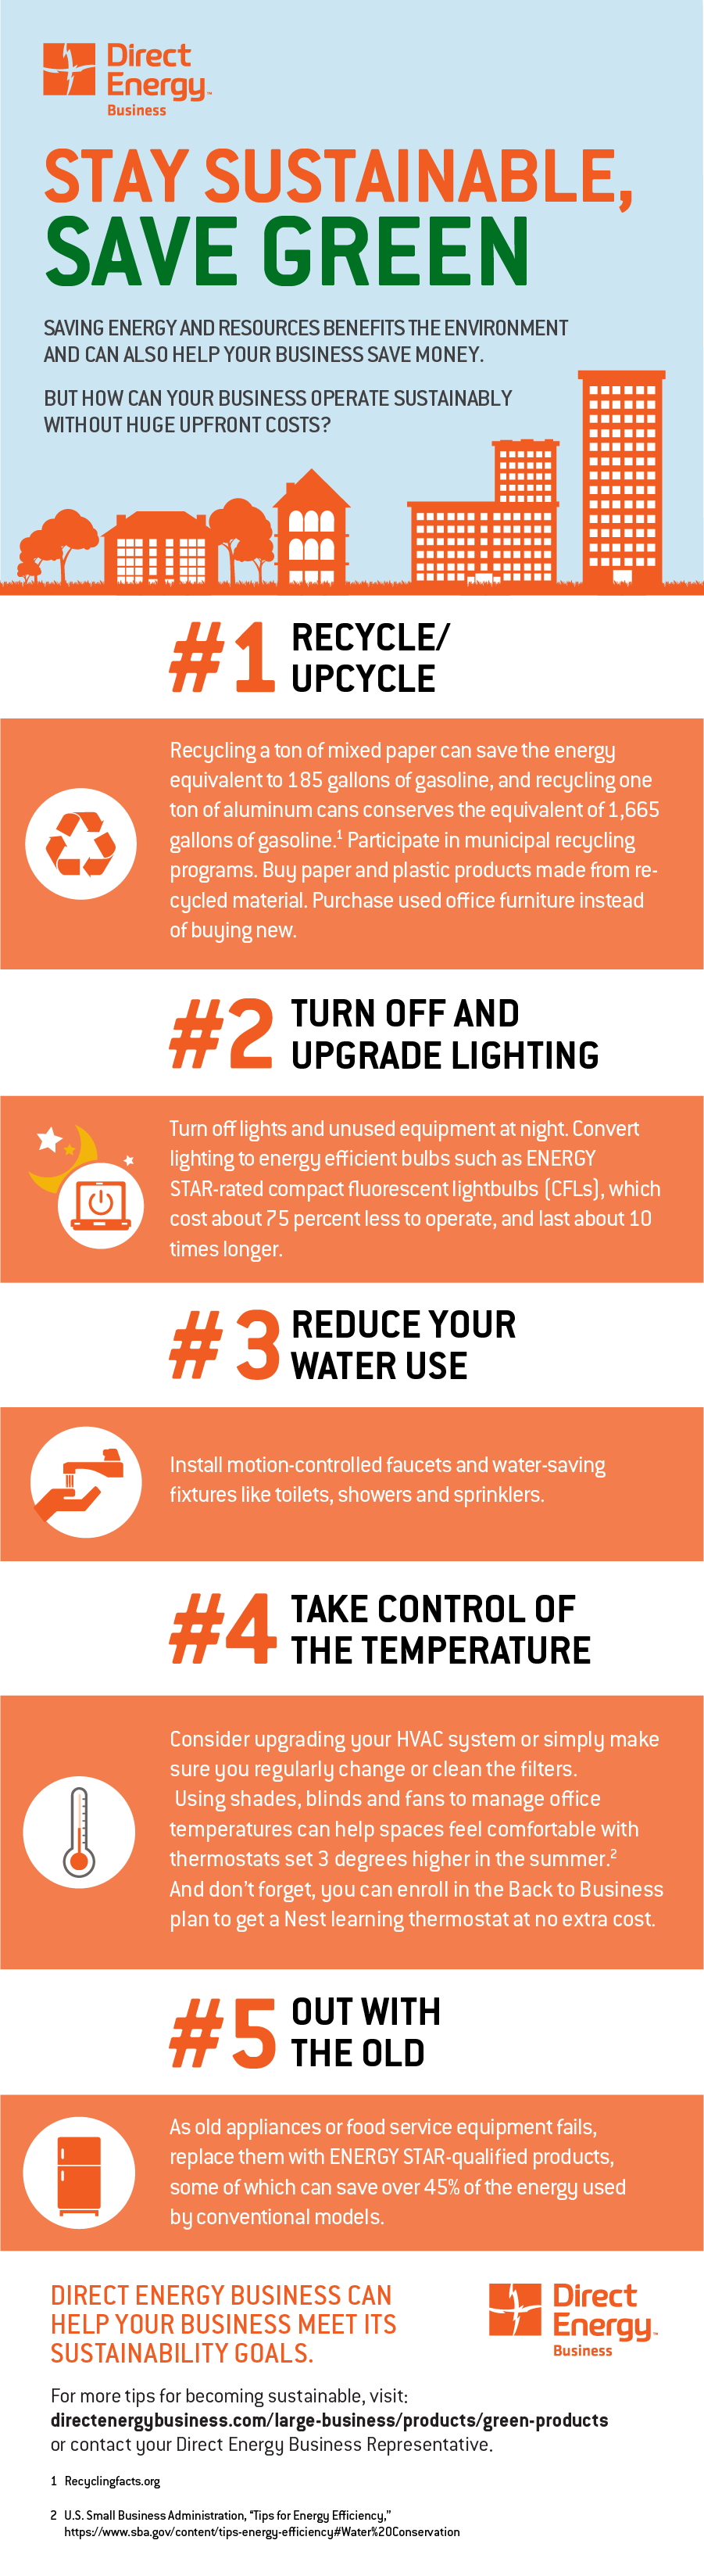 Energy Saving Tips for Small Businesses